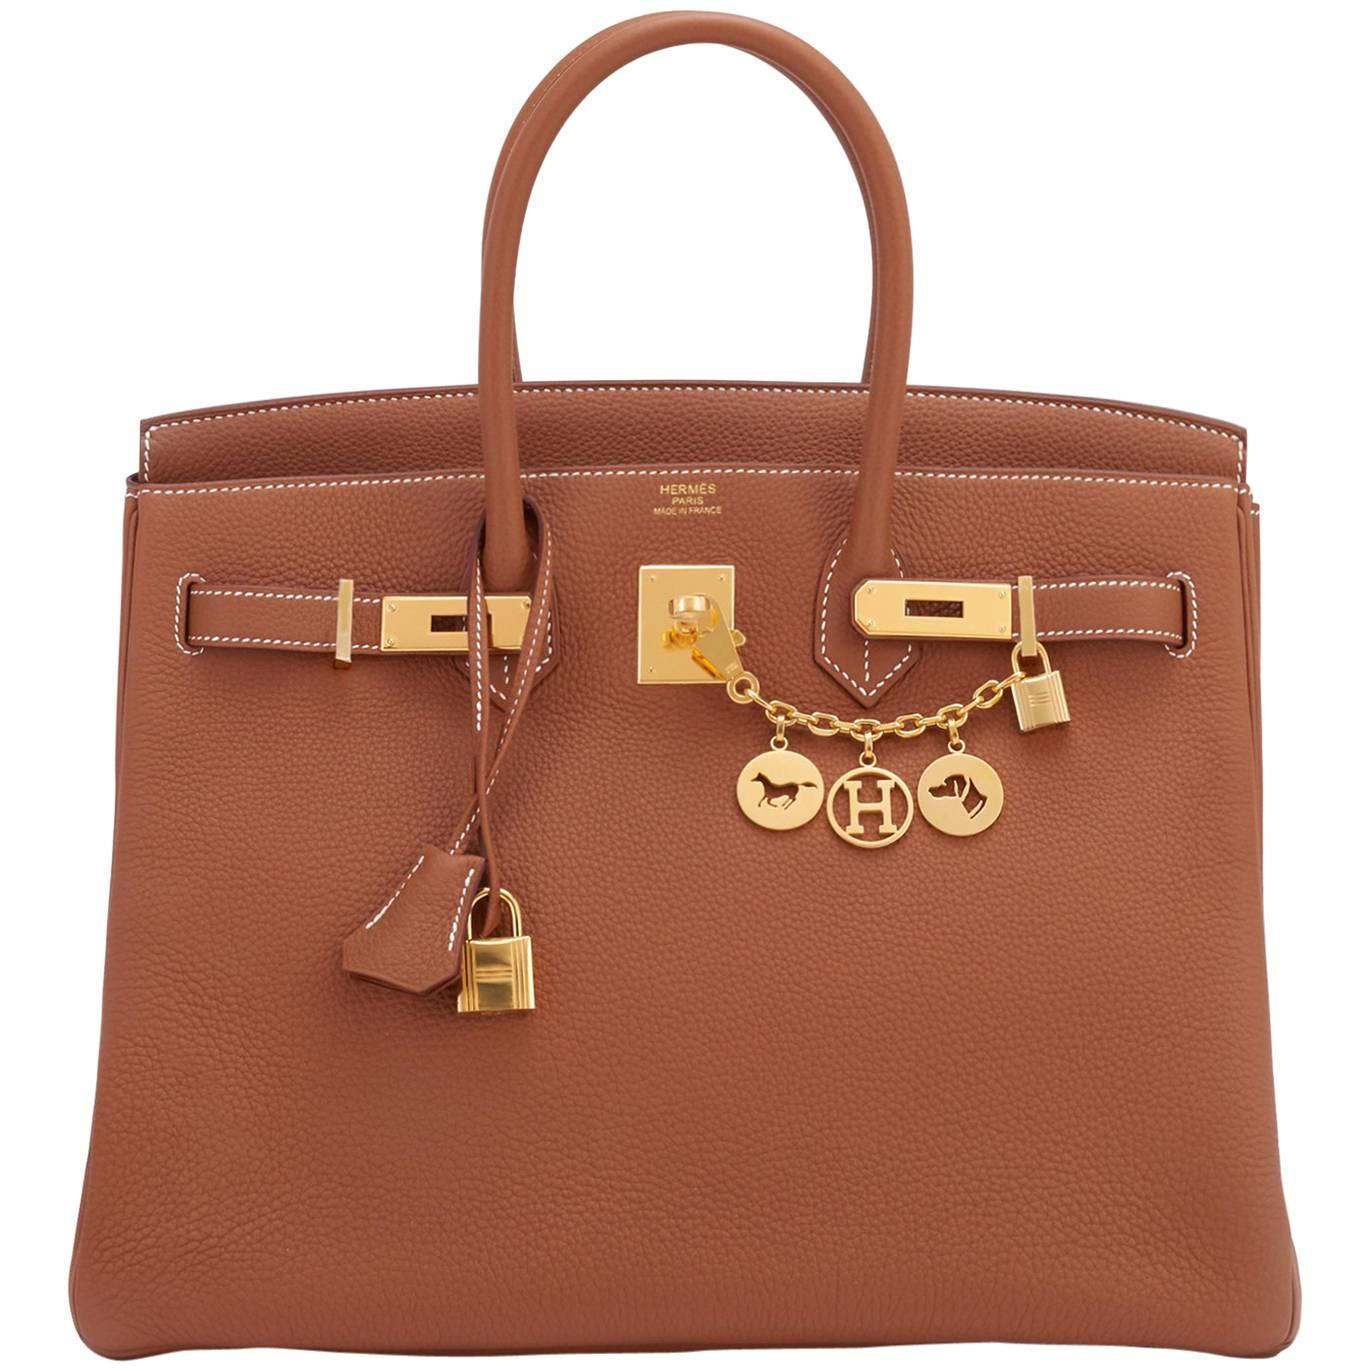 cb0f553ddc2d Vintage and Designer Tote Bags - 3